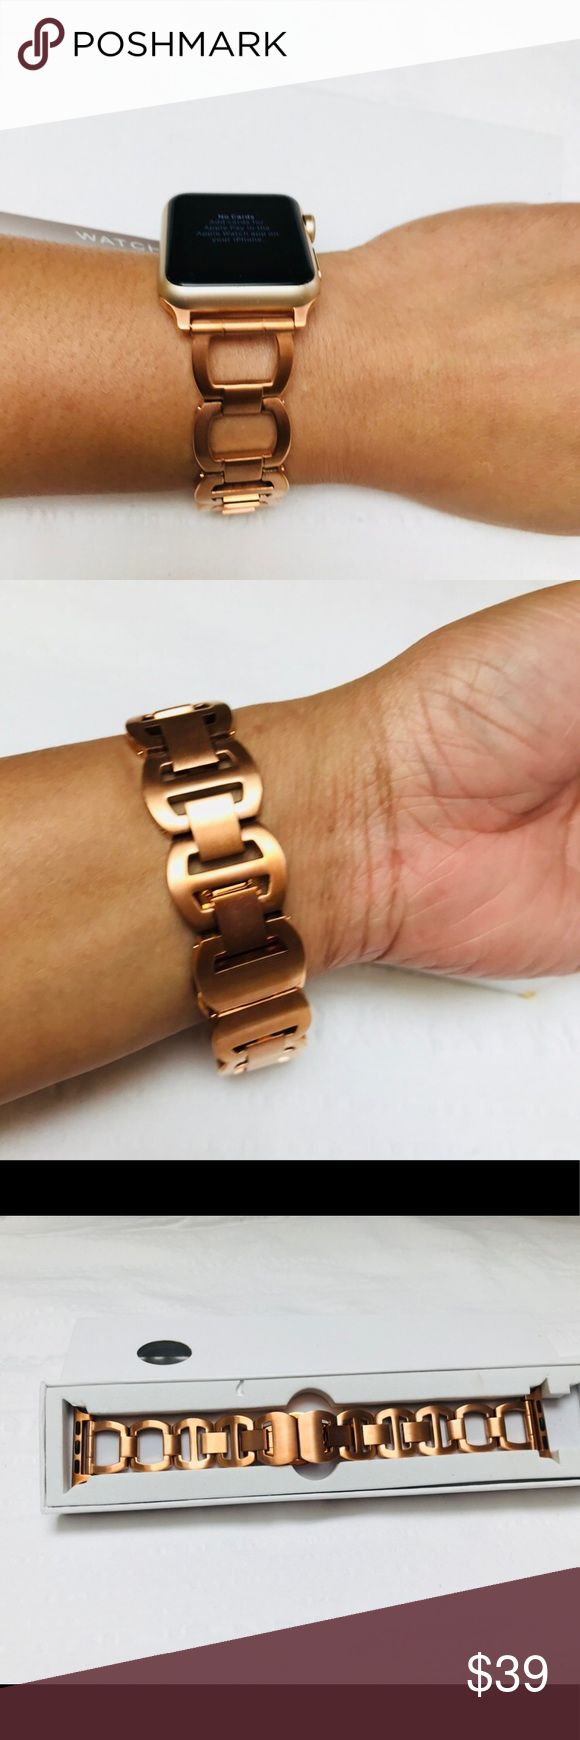 CUZOW Stainless Steel Link Bracelet Gold Strap CUZOW Stainless Steel Link Bracelet Adjustable Flexible Replacement Watch Band for Apple Watch. The metal watch band is made of premium stainless steel, compression molding, fine workmanship, sturdy and durable, It is a perfect companion mixed with fashion, nobility, elegance for Apple Watch series 1 &2.Refined dual fold-over clasp with unique button, The metal clasp firmly closed, prevent loosen automatically, safe and beautiful, and very easy…